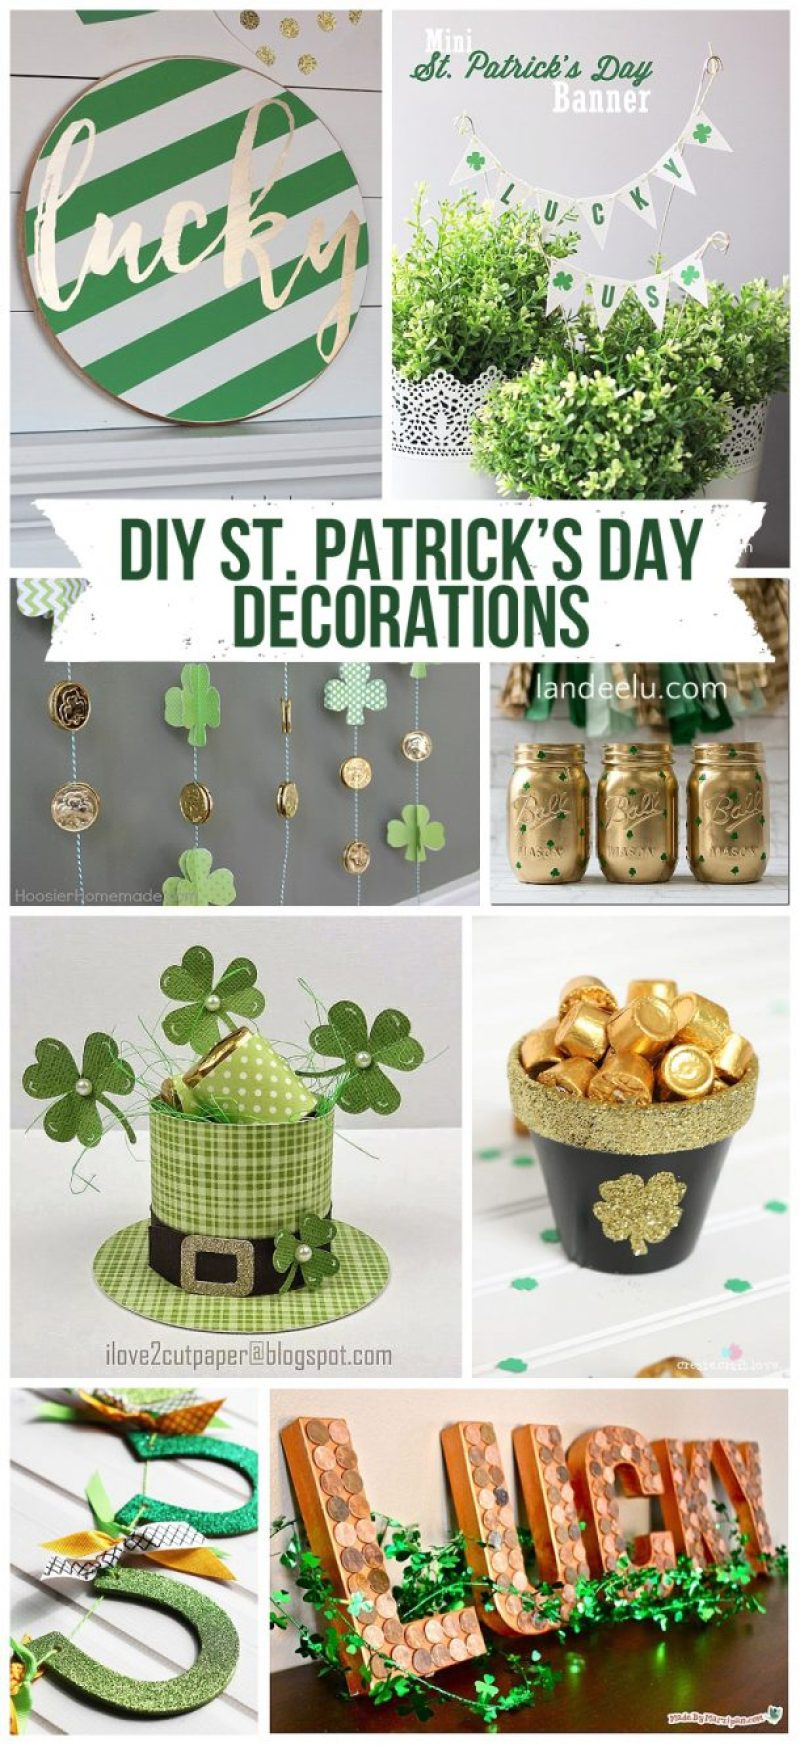 DIY St. Patrick's Day Decorations! So many awesome ideas! | landeelu.com